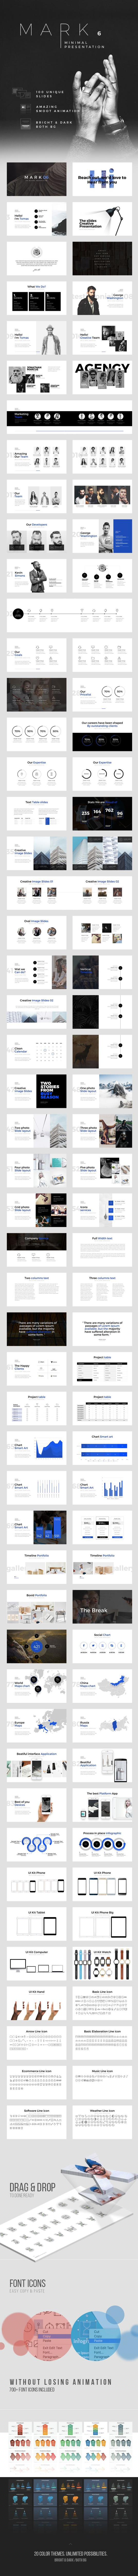 MARK06-Minimal Powerpoint Template - Abstract #PowerPoint #Templates Download here: https://graphicriver.net/item/mark06minimal-powerpoint-template/17168654?ref=alena994